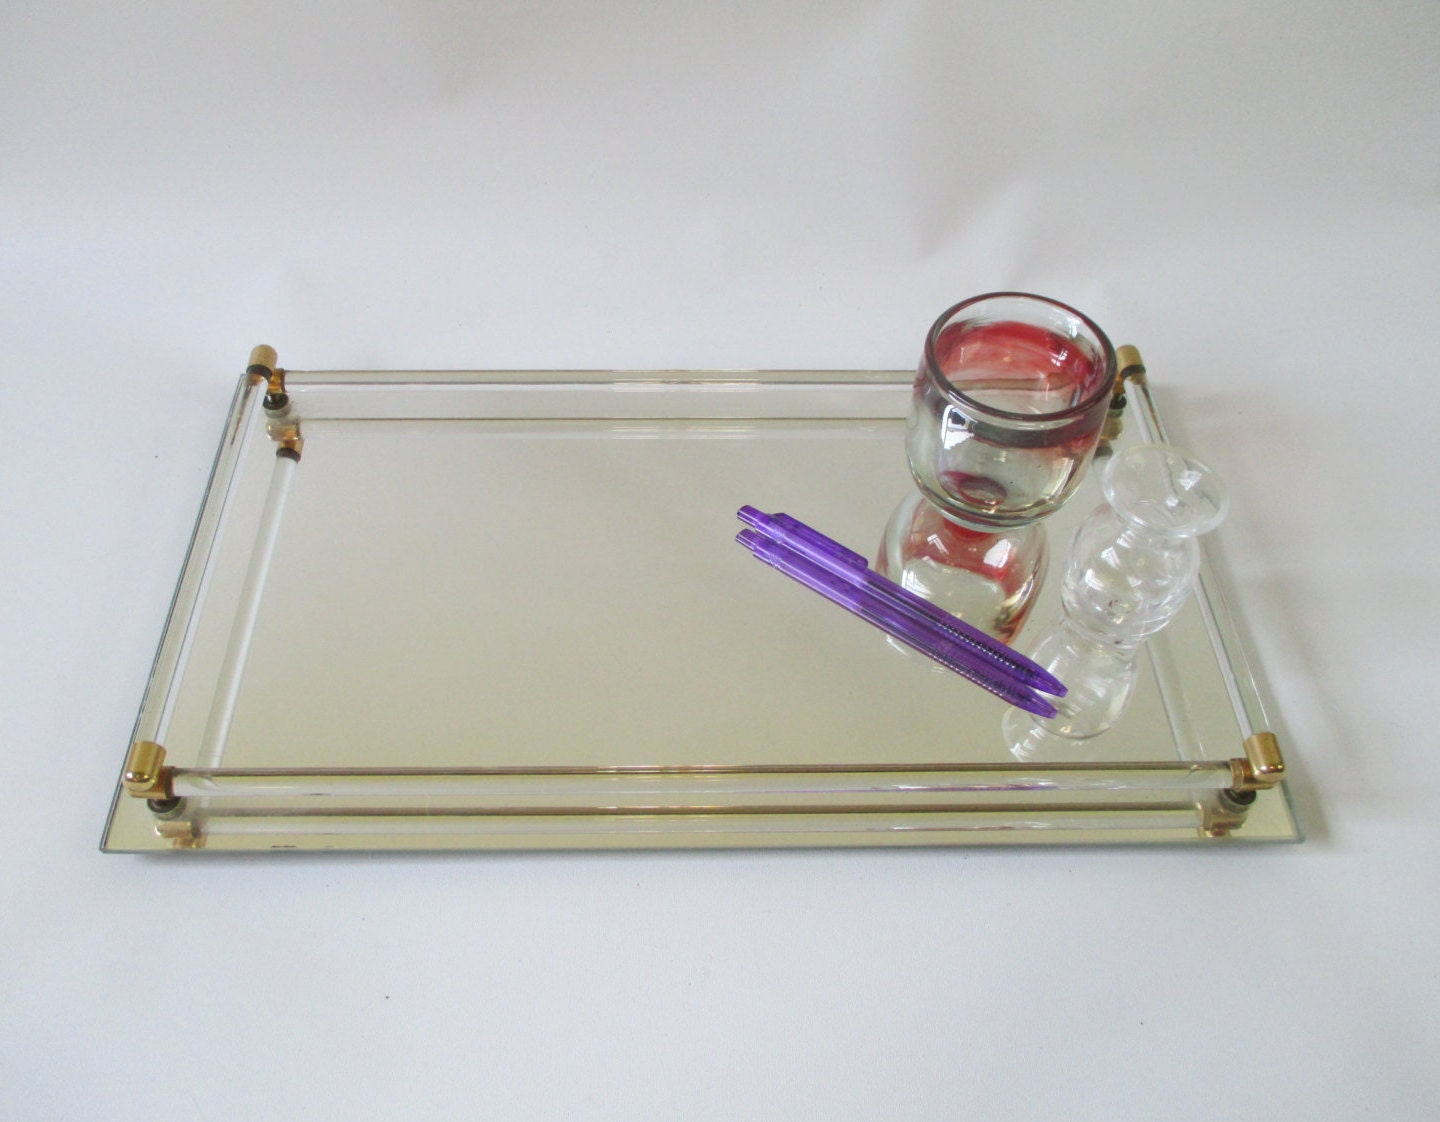 Mirrored glass vanity tray vintage toledo plate by hobbithouse for Mirrored bathroom tray